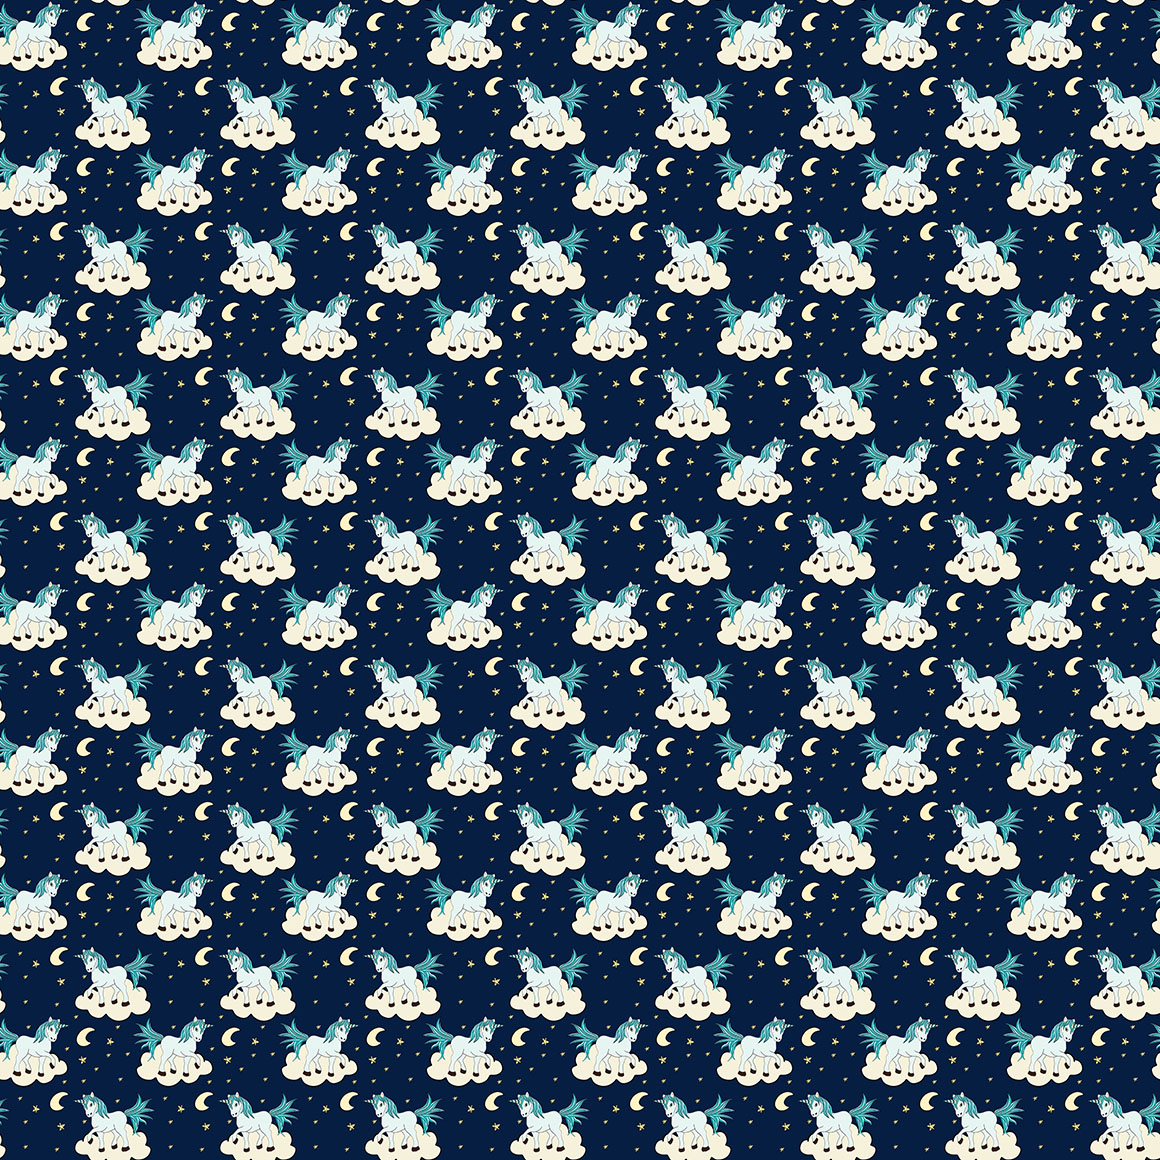 10 Unicorn Themed Seamless Patterns example image 2